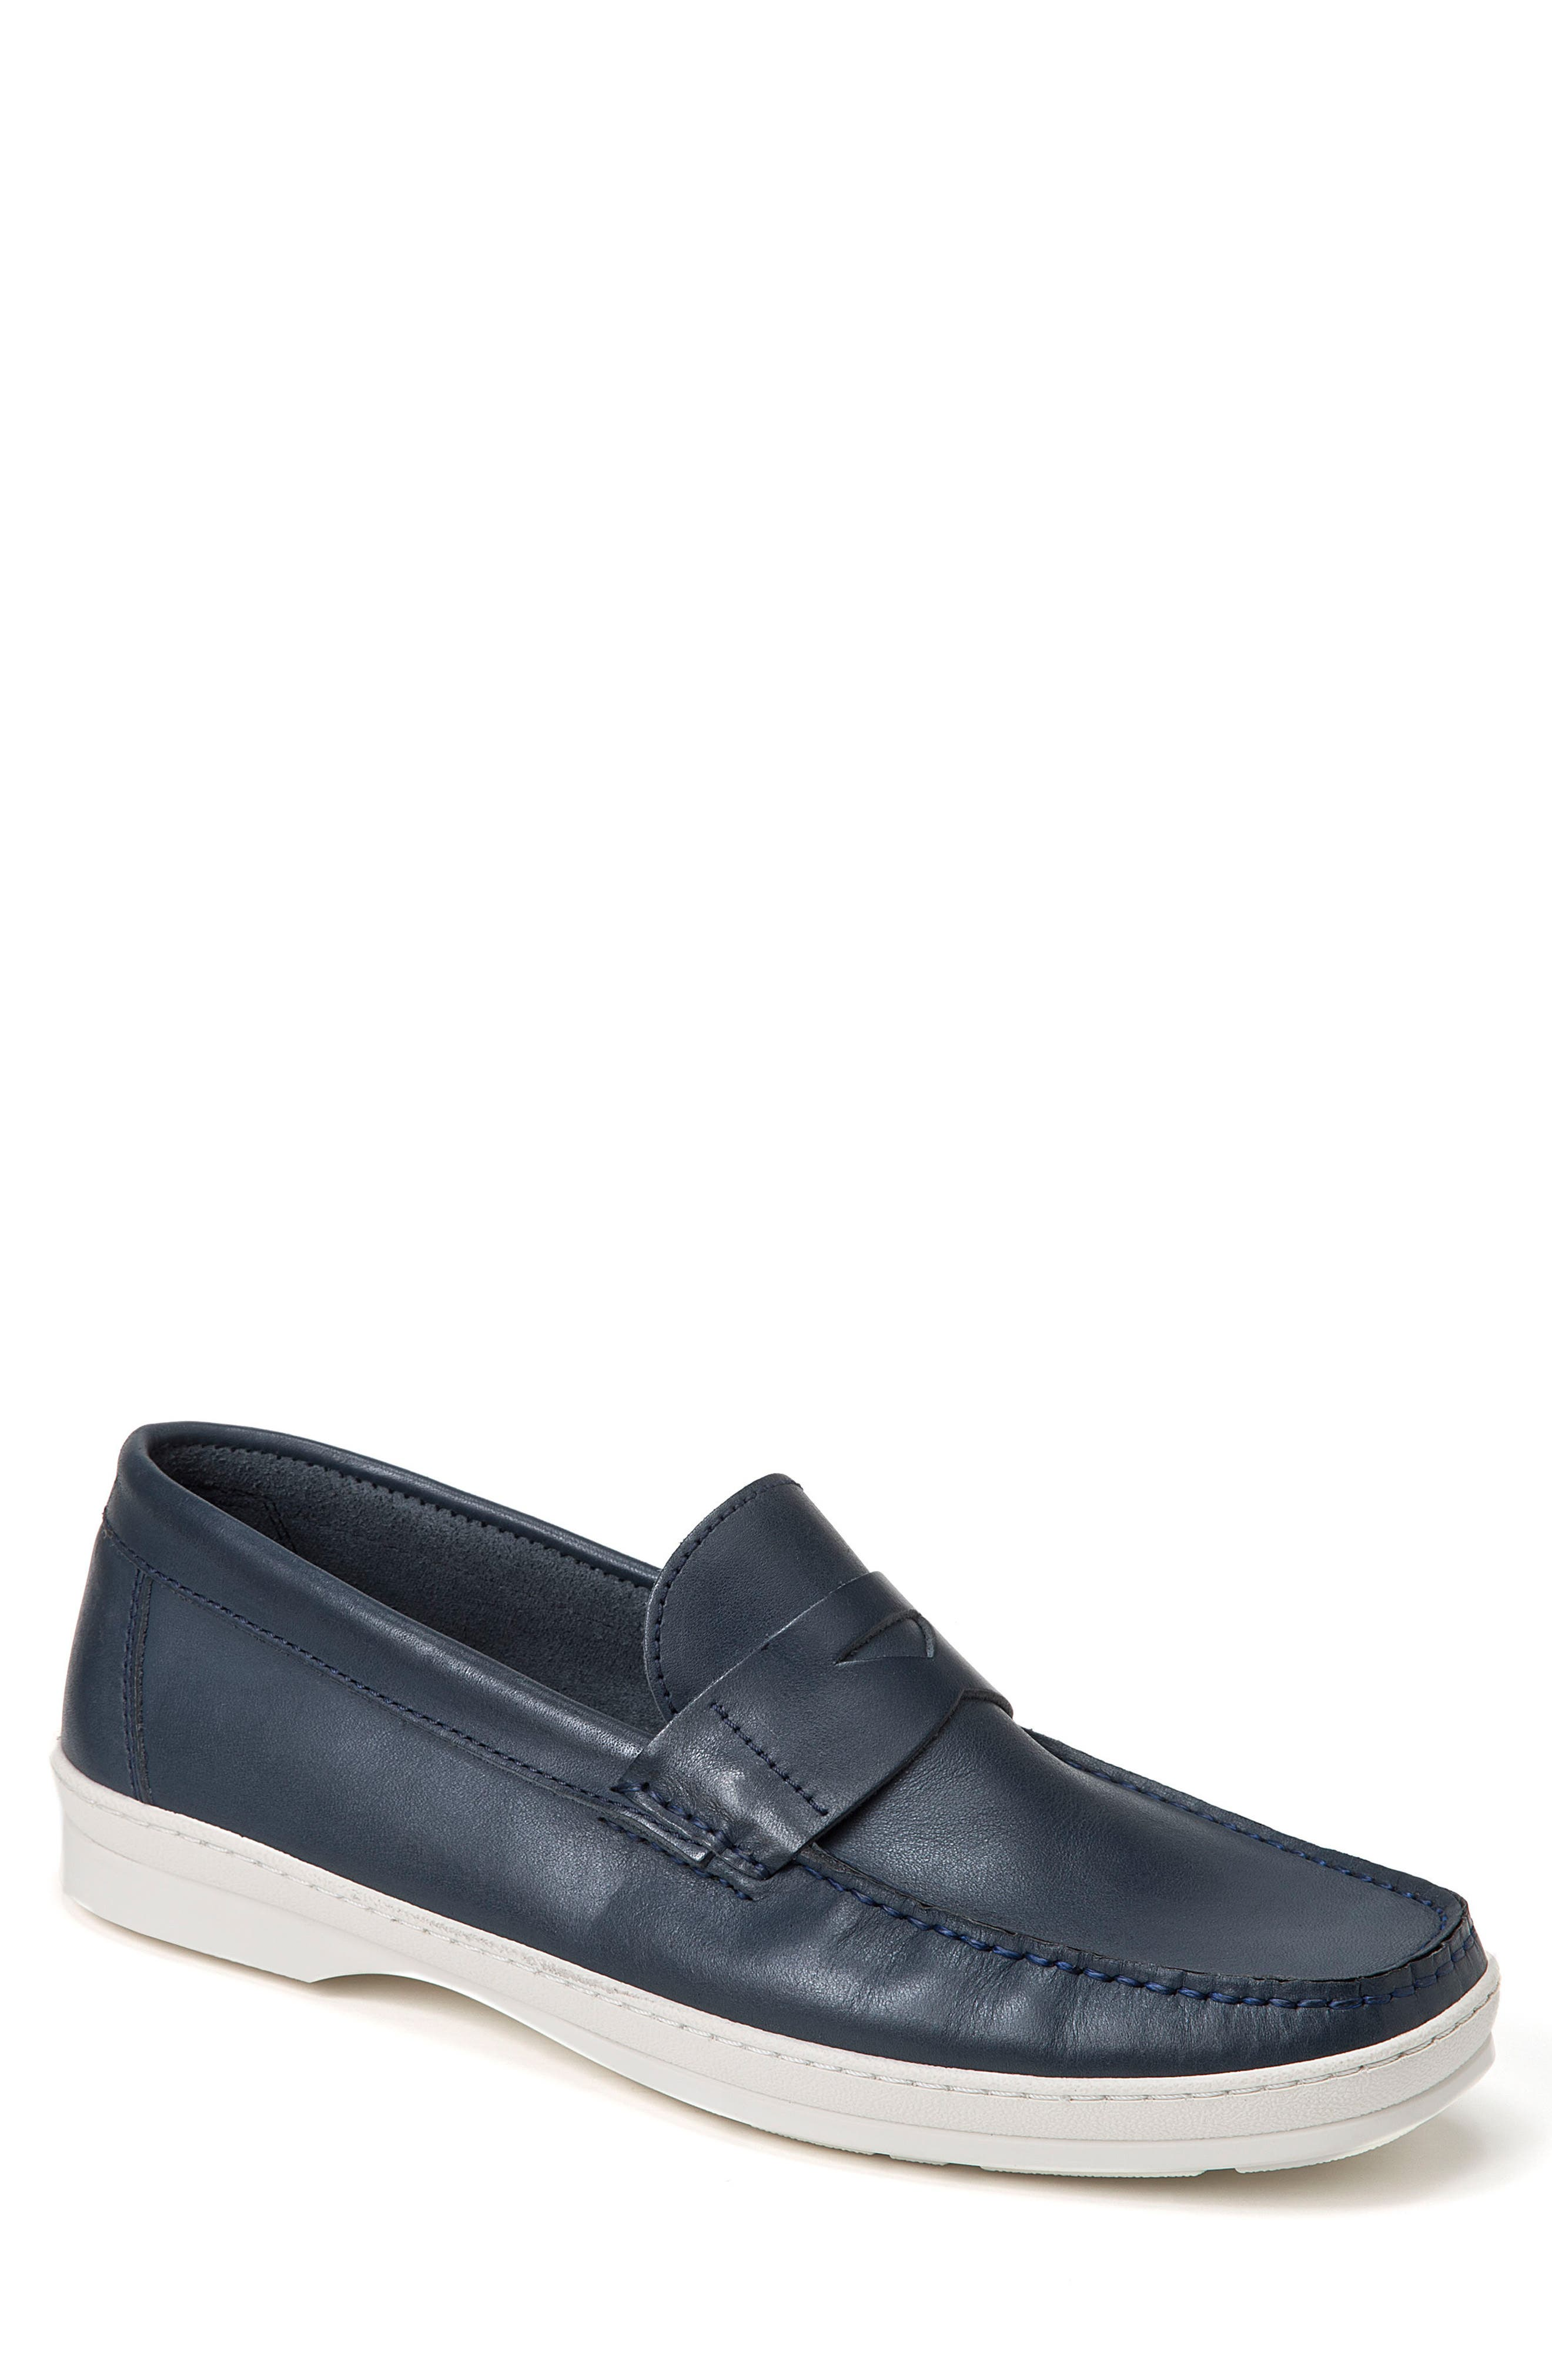 Sandro Moscoloni Simon Penny Loafer (Men)